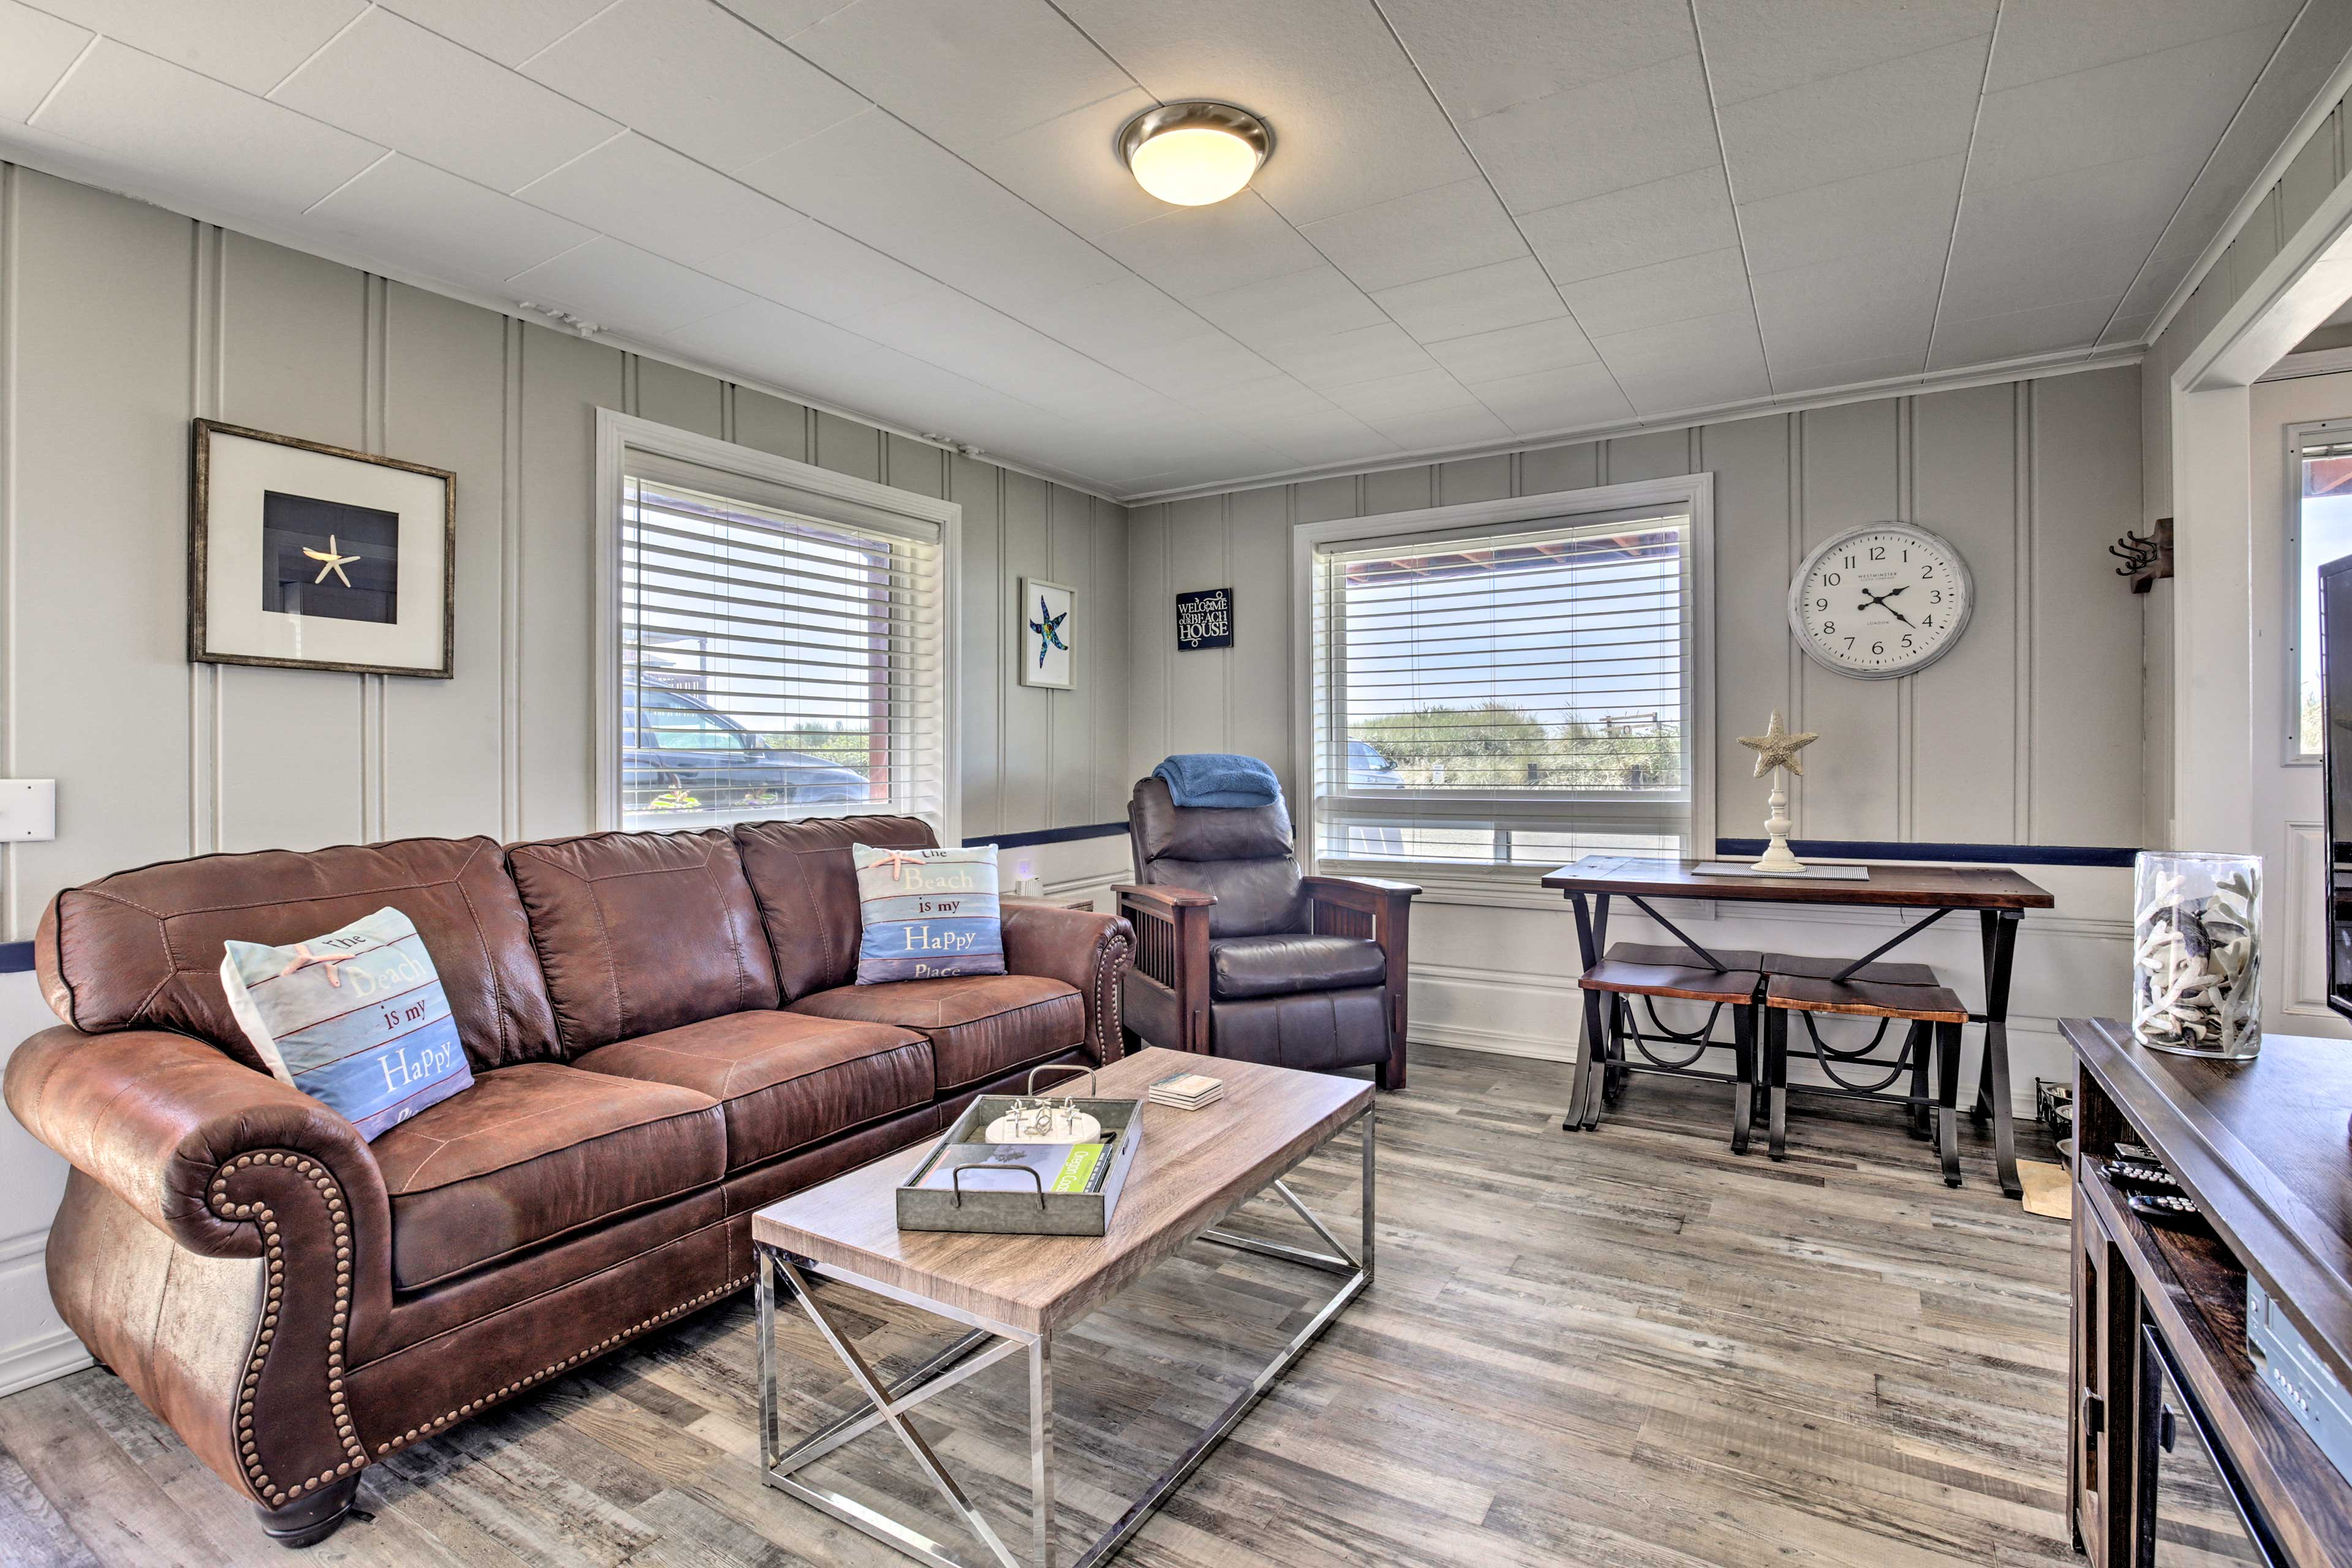 The modern interior boasts beach-inspired decor and comfortable seating.